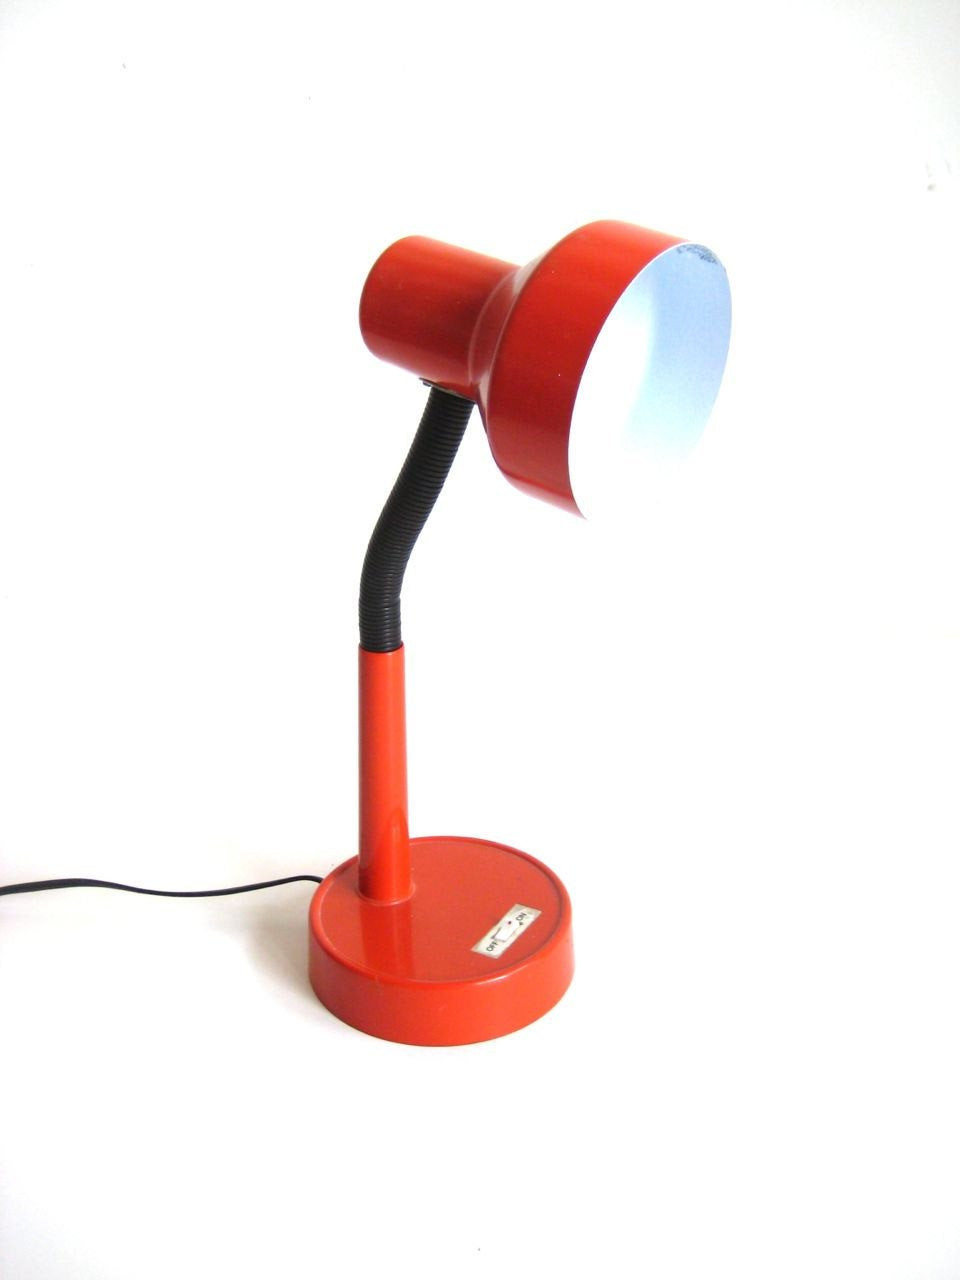 Best ideas about Red Desk Lamp . Save or Pin Red Metal Gooseneck Desk Lamp Now.